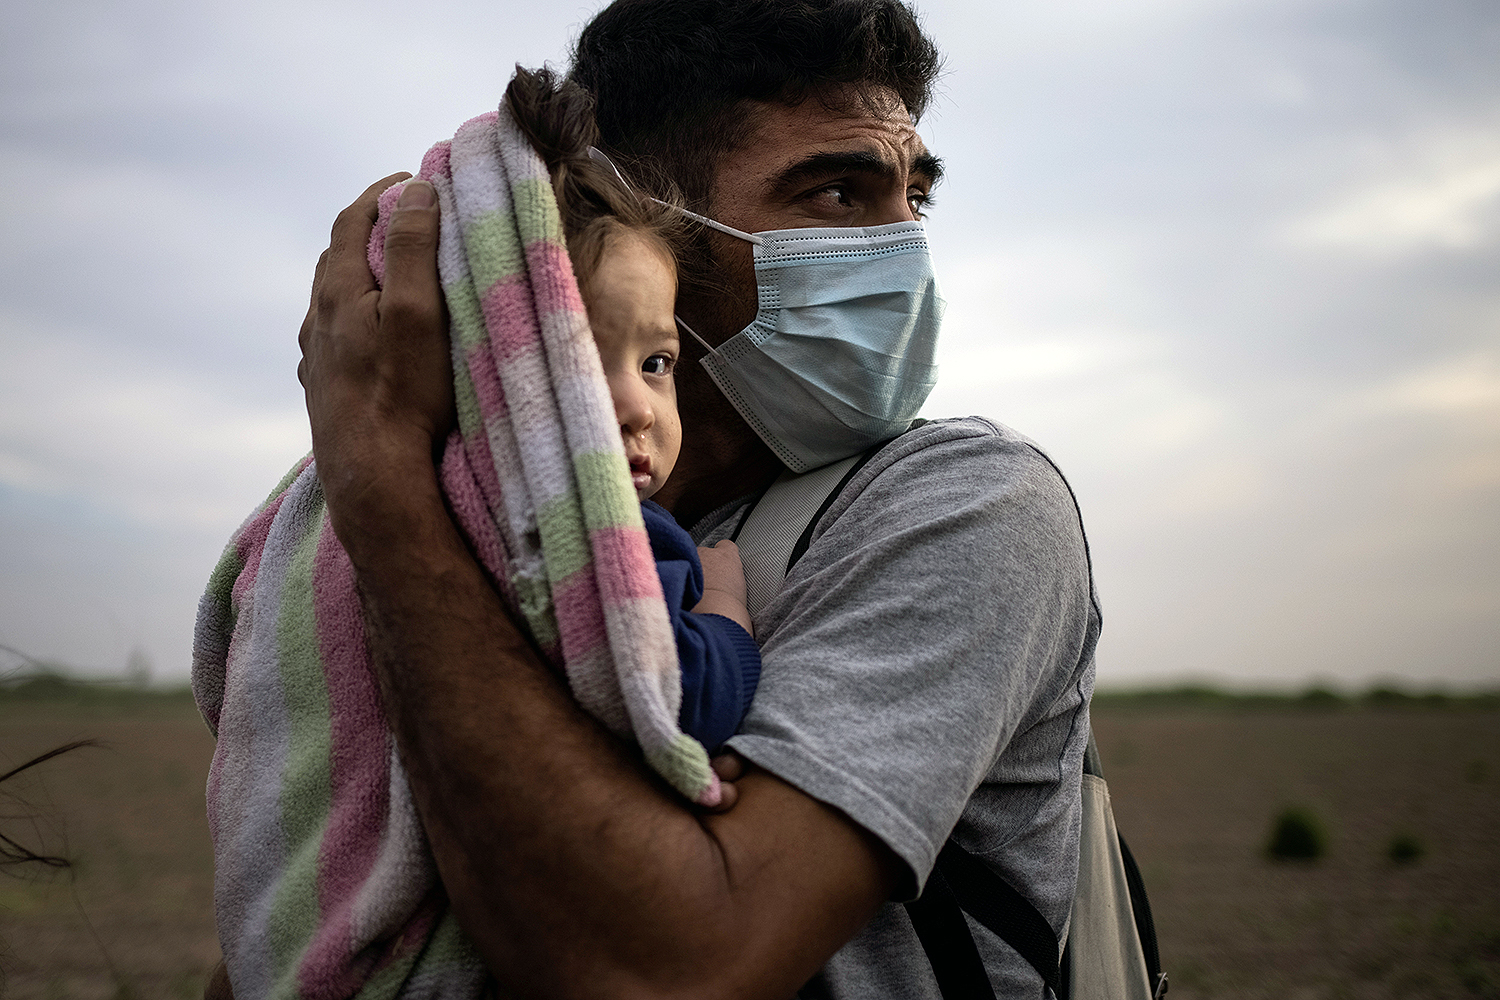 Francisco, 34, an asylum-seeking migrant from Honduras, cradles his 9-month-old daughter, Megan, from the early morning cold and wind in La Joya, Texas, as they await transportation to a processing center after crossing the Rio Grande into the United States from Mexico on a raft March 25. Adrees Latif/REUTERS